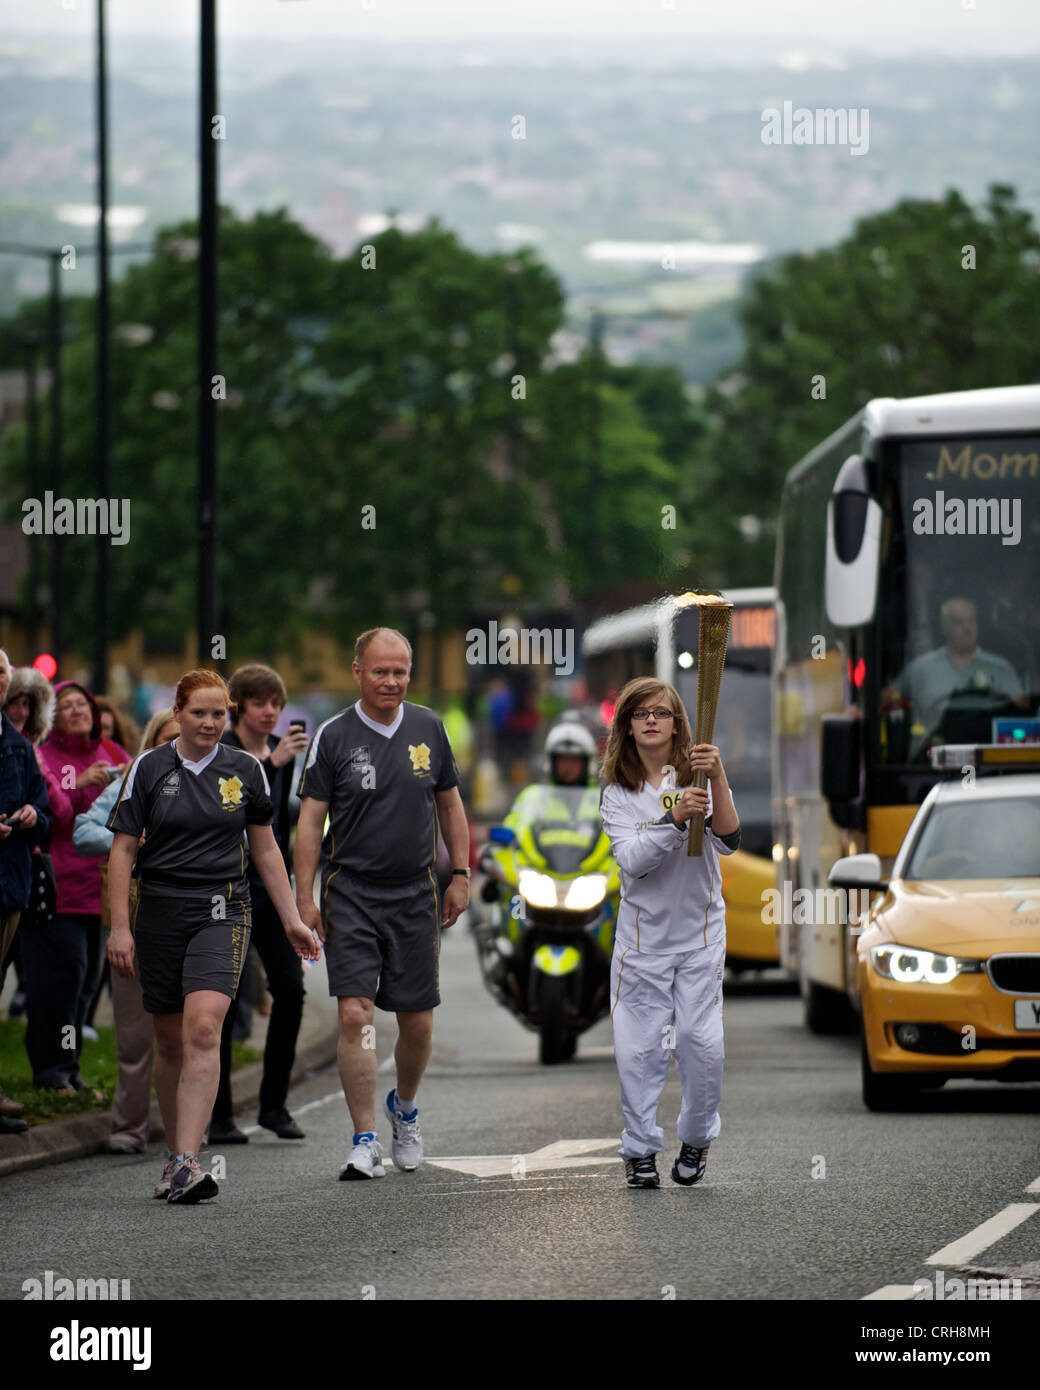 12 yr old. Catherine Stott carries the flame through the town of Oldham, as part of the Olympic torch relay - Stock Image